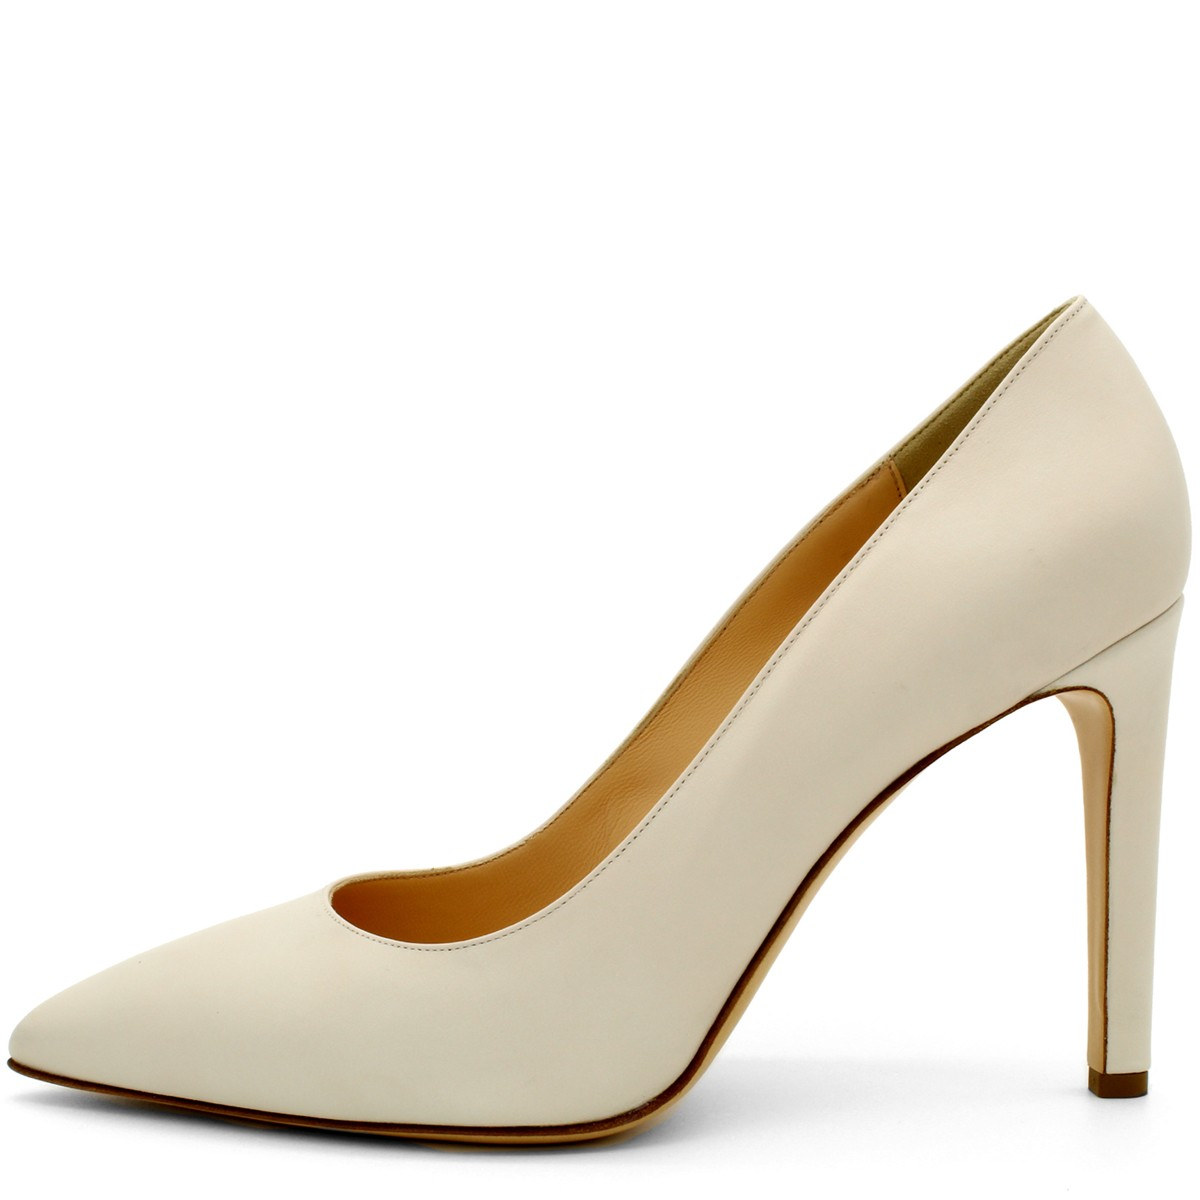 BEIGE POINTED-TOE 100 PUMPS